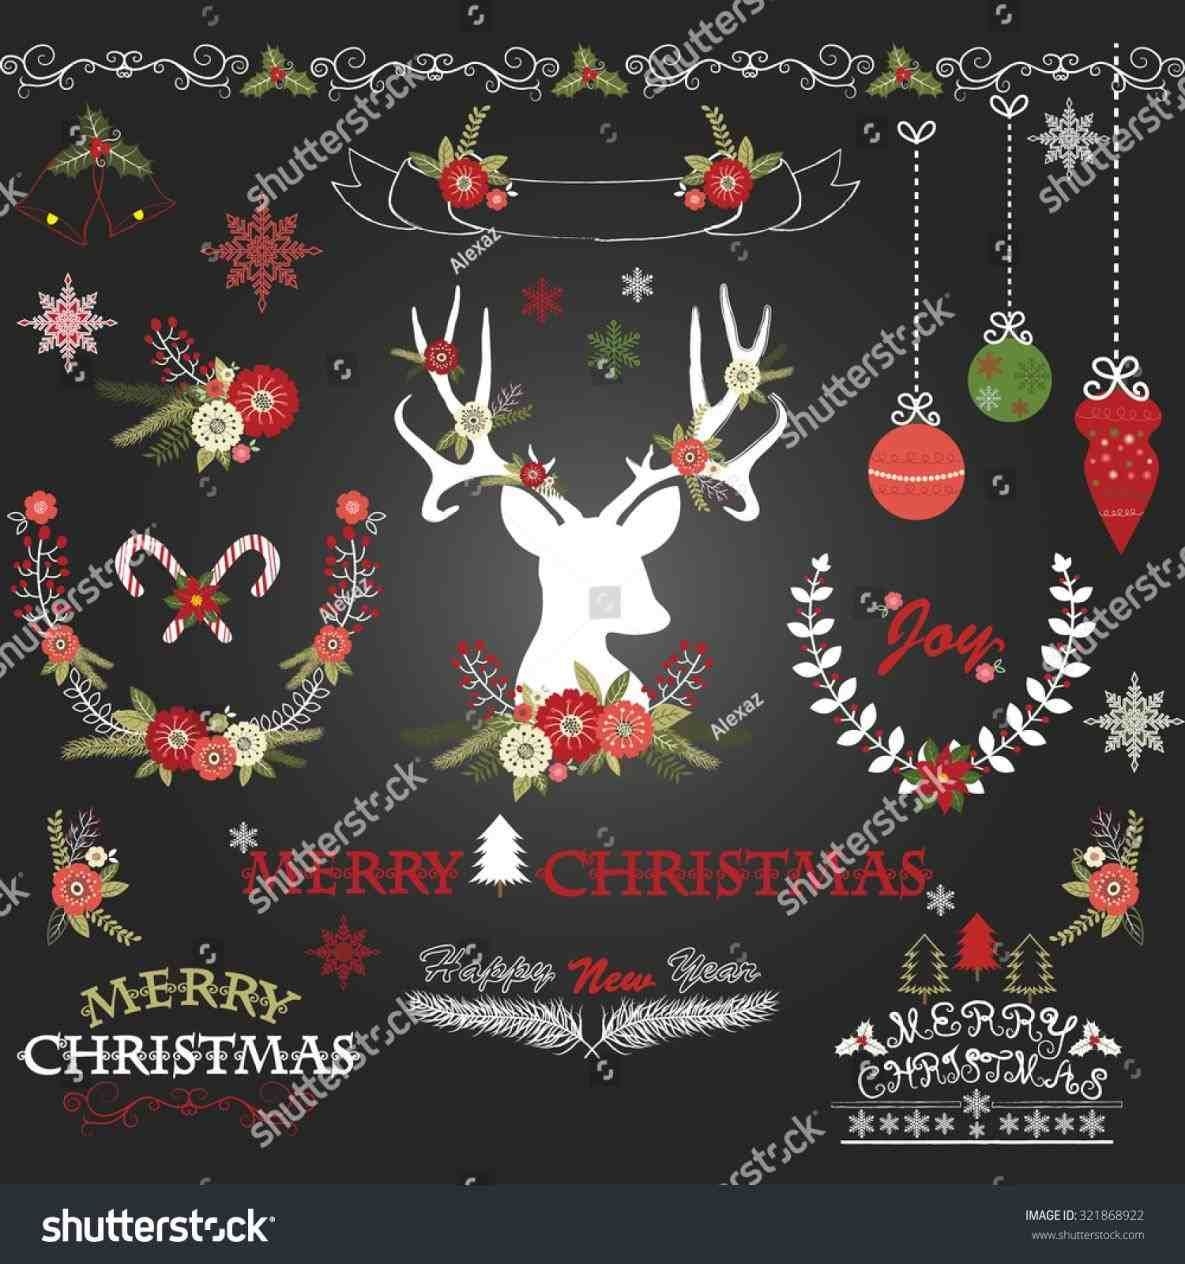 New Post Rustic Merry Christmas Background Visit Bobayule Trending Decors